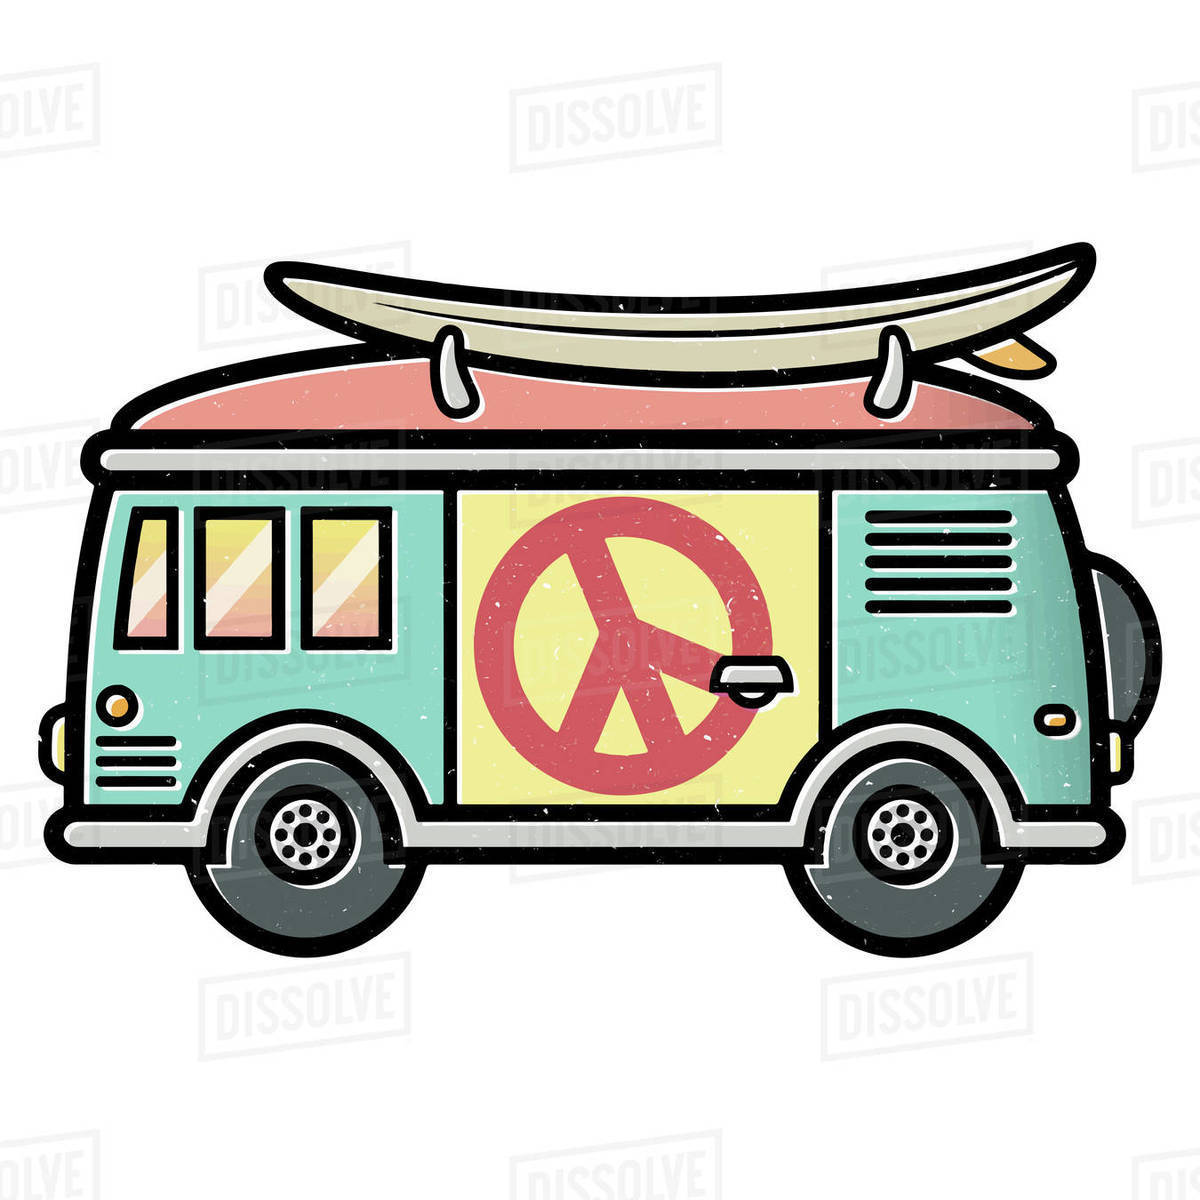 Illustration of hippy van with surfboard on top isolated on white background Royalty-free stock photo